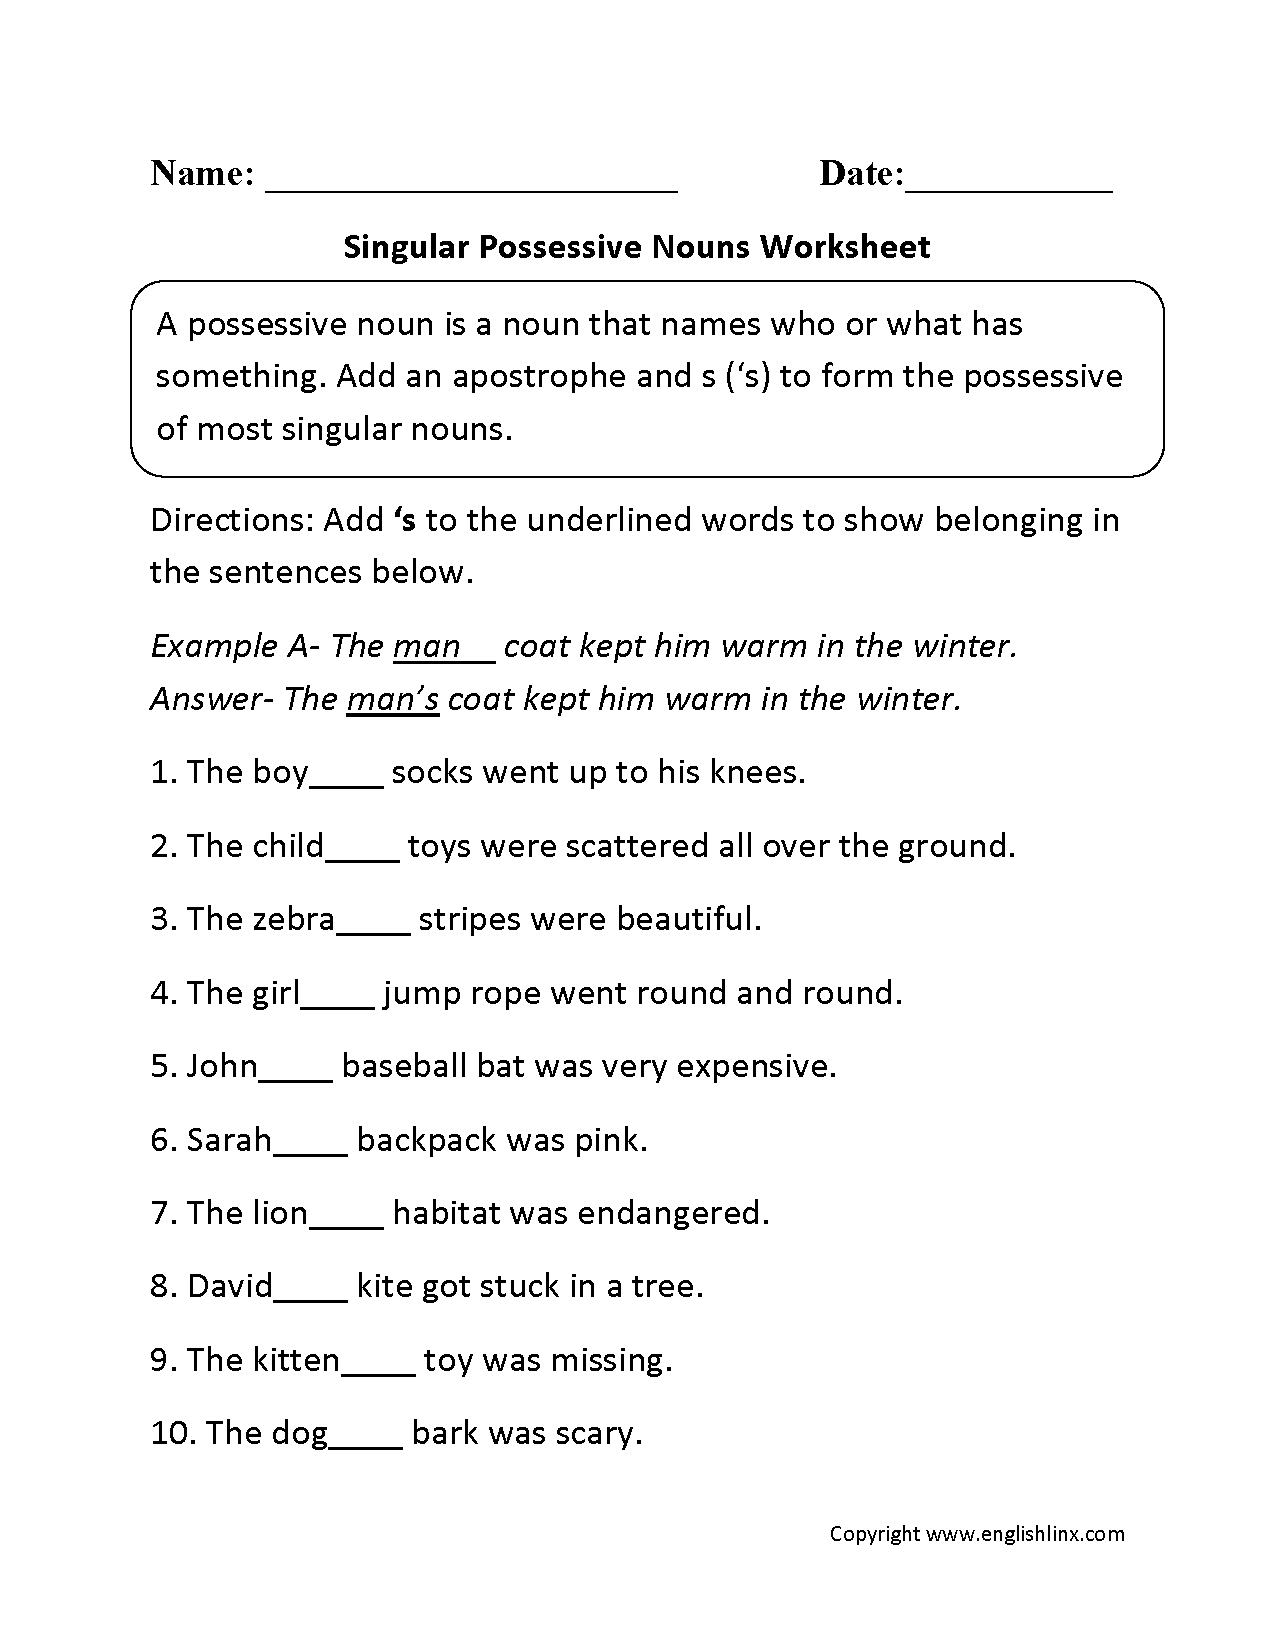 Aldiablosus  Sweet Nouns Worksheets  Possessive Nouns Worksheets With Hot Possessive Nouns Worksheets With Amusing Silent E Worksheets Rd Grade Also Is And Are Worksheets For Kids In Addition Simple Present Vs Present Progressive Worksheets And Mental Mathematics Worksheets As Well As Worksheets For Class  Maths Additionally Reading Comprehension Worksheets For Nd Grade Free From Englishlinxcom With Aldiablosus  Hot Nouns Worksheets  Possessive Nouns Worksheets With Amusing Possessive Nouns Worksheets And Sweet Silent E Worksheets Rd Grade Also Is And Are Worksheets For Kids In Addition Simple Present Vs Present Progressive Worksheets From Englishlinxcom